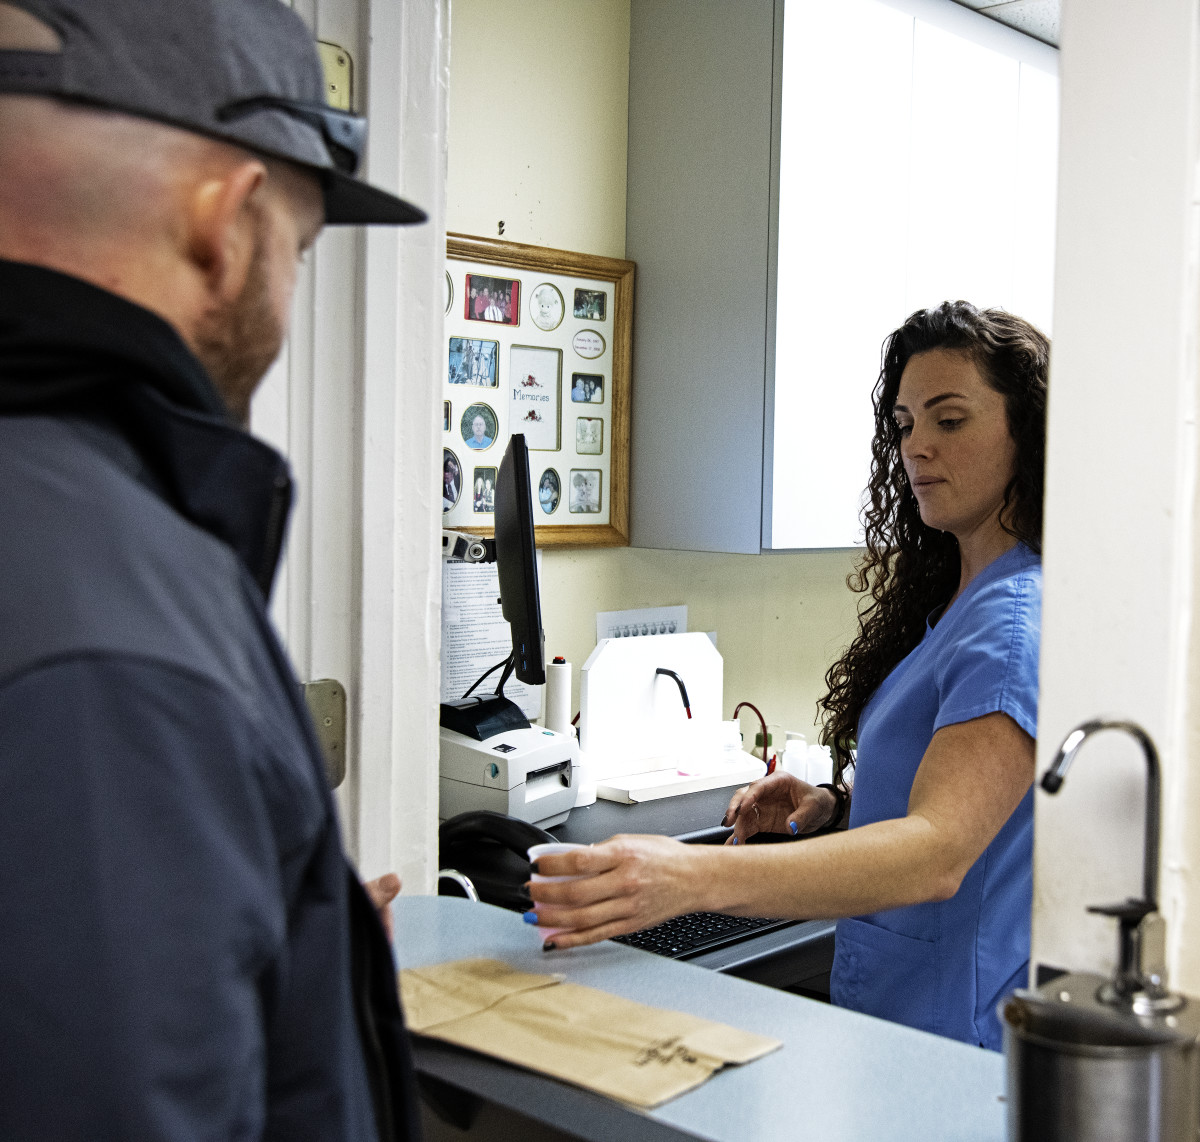 A client receives his dose of methadone from a dispensing nurse at C.O.R.E. Medical Clinic in Sacramento, California, on March 13th, 2019.